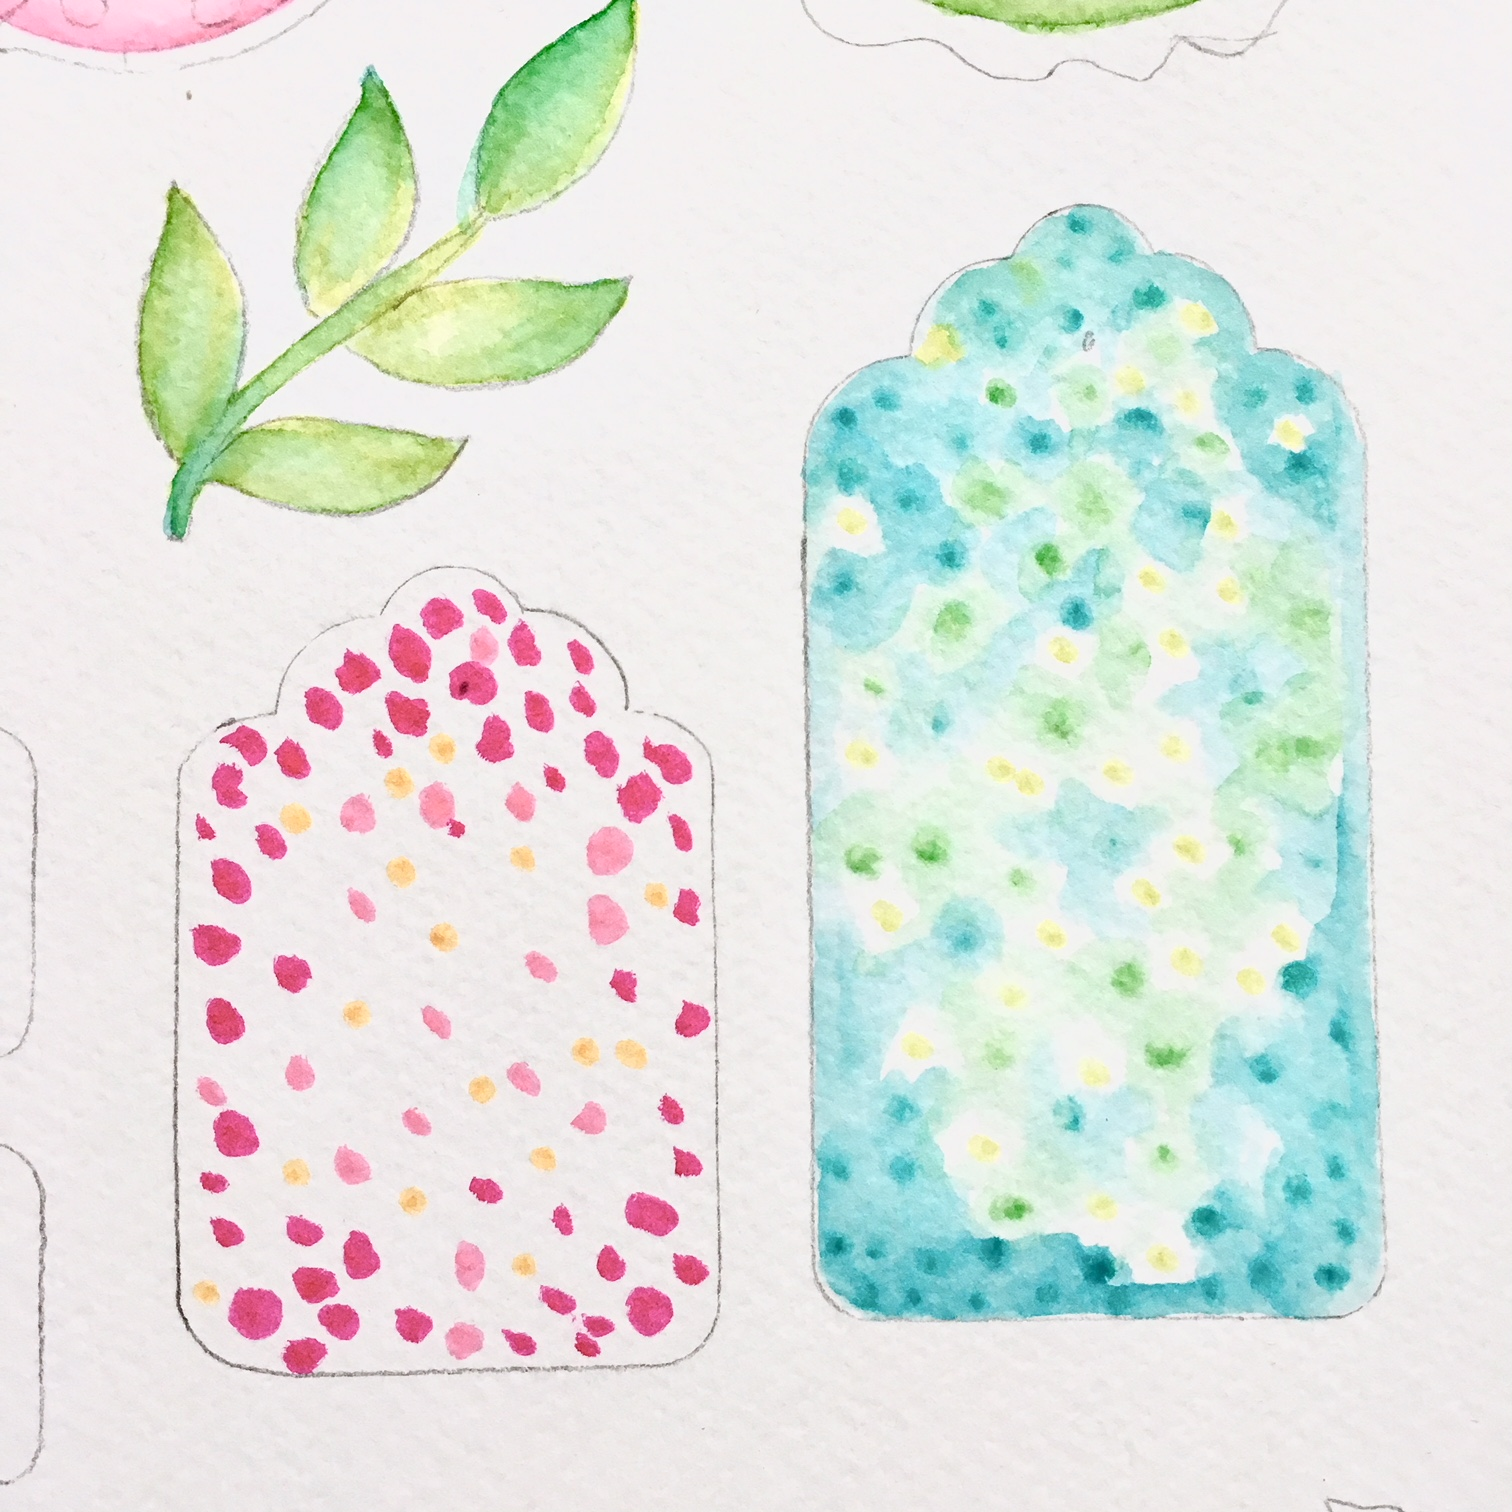 marker water colouring while DIY scrapbook embellishments